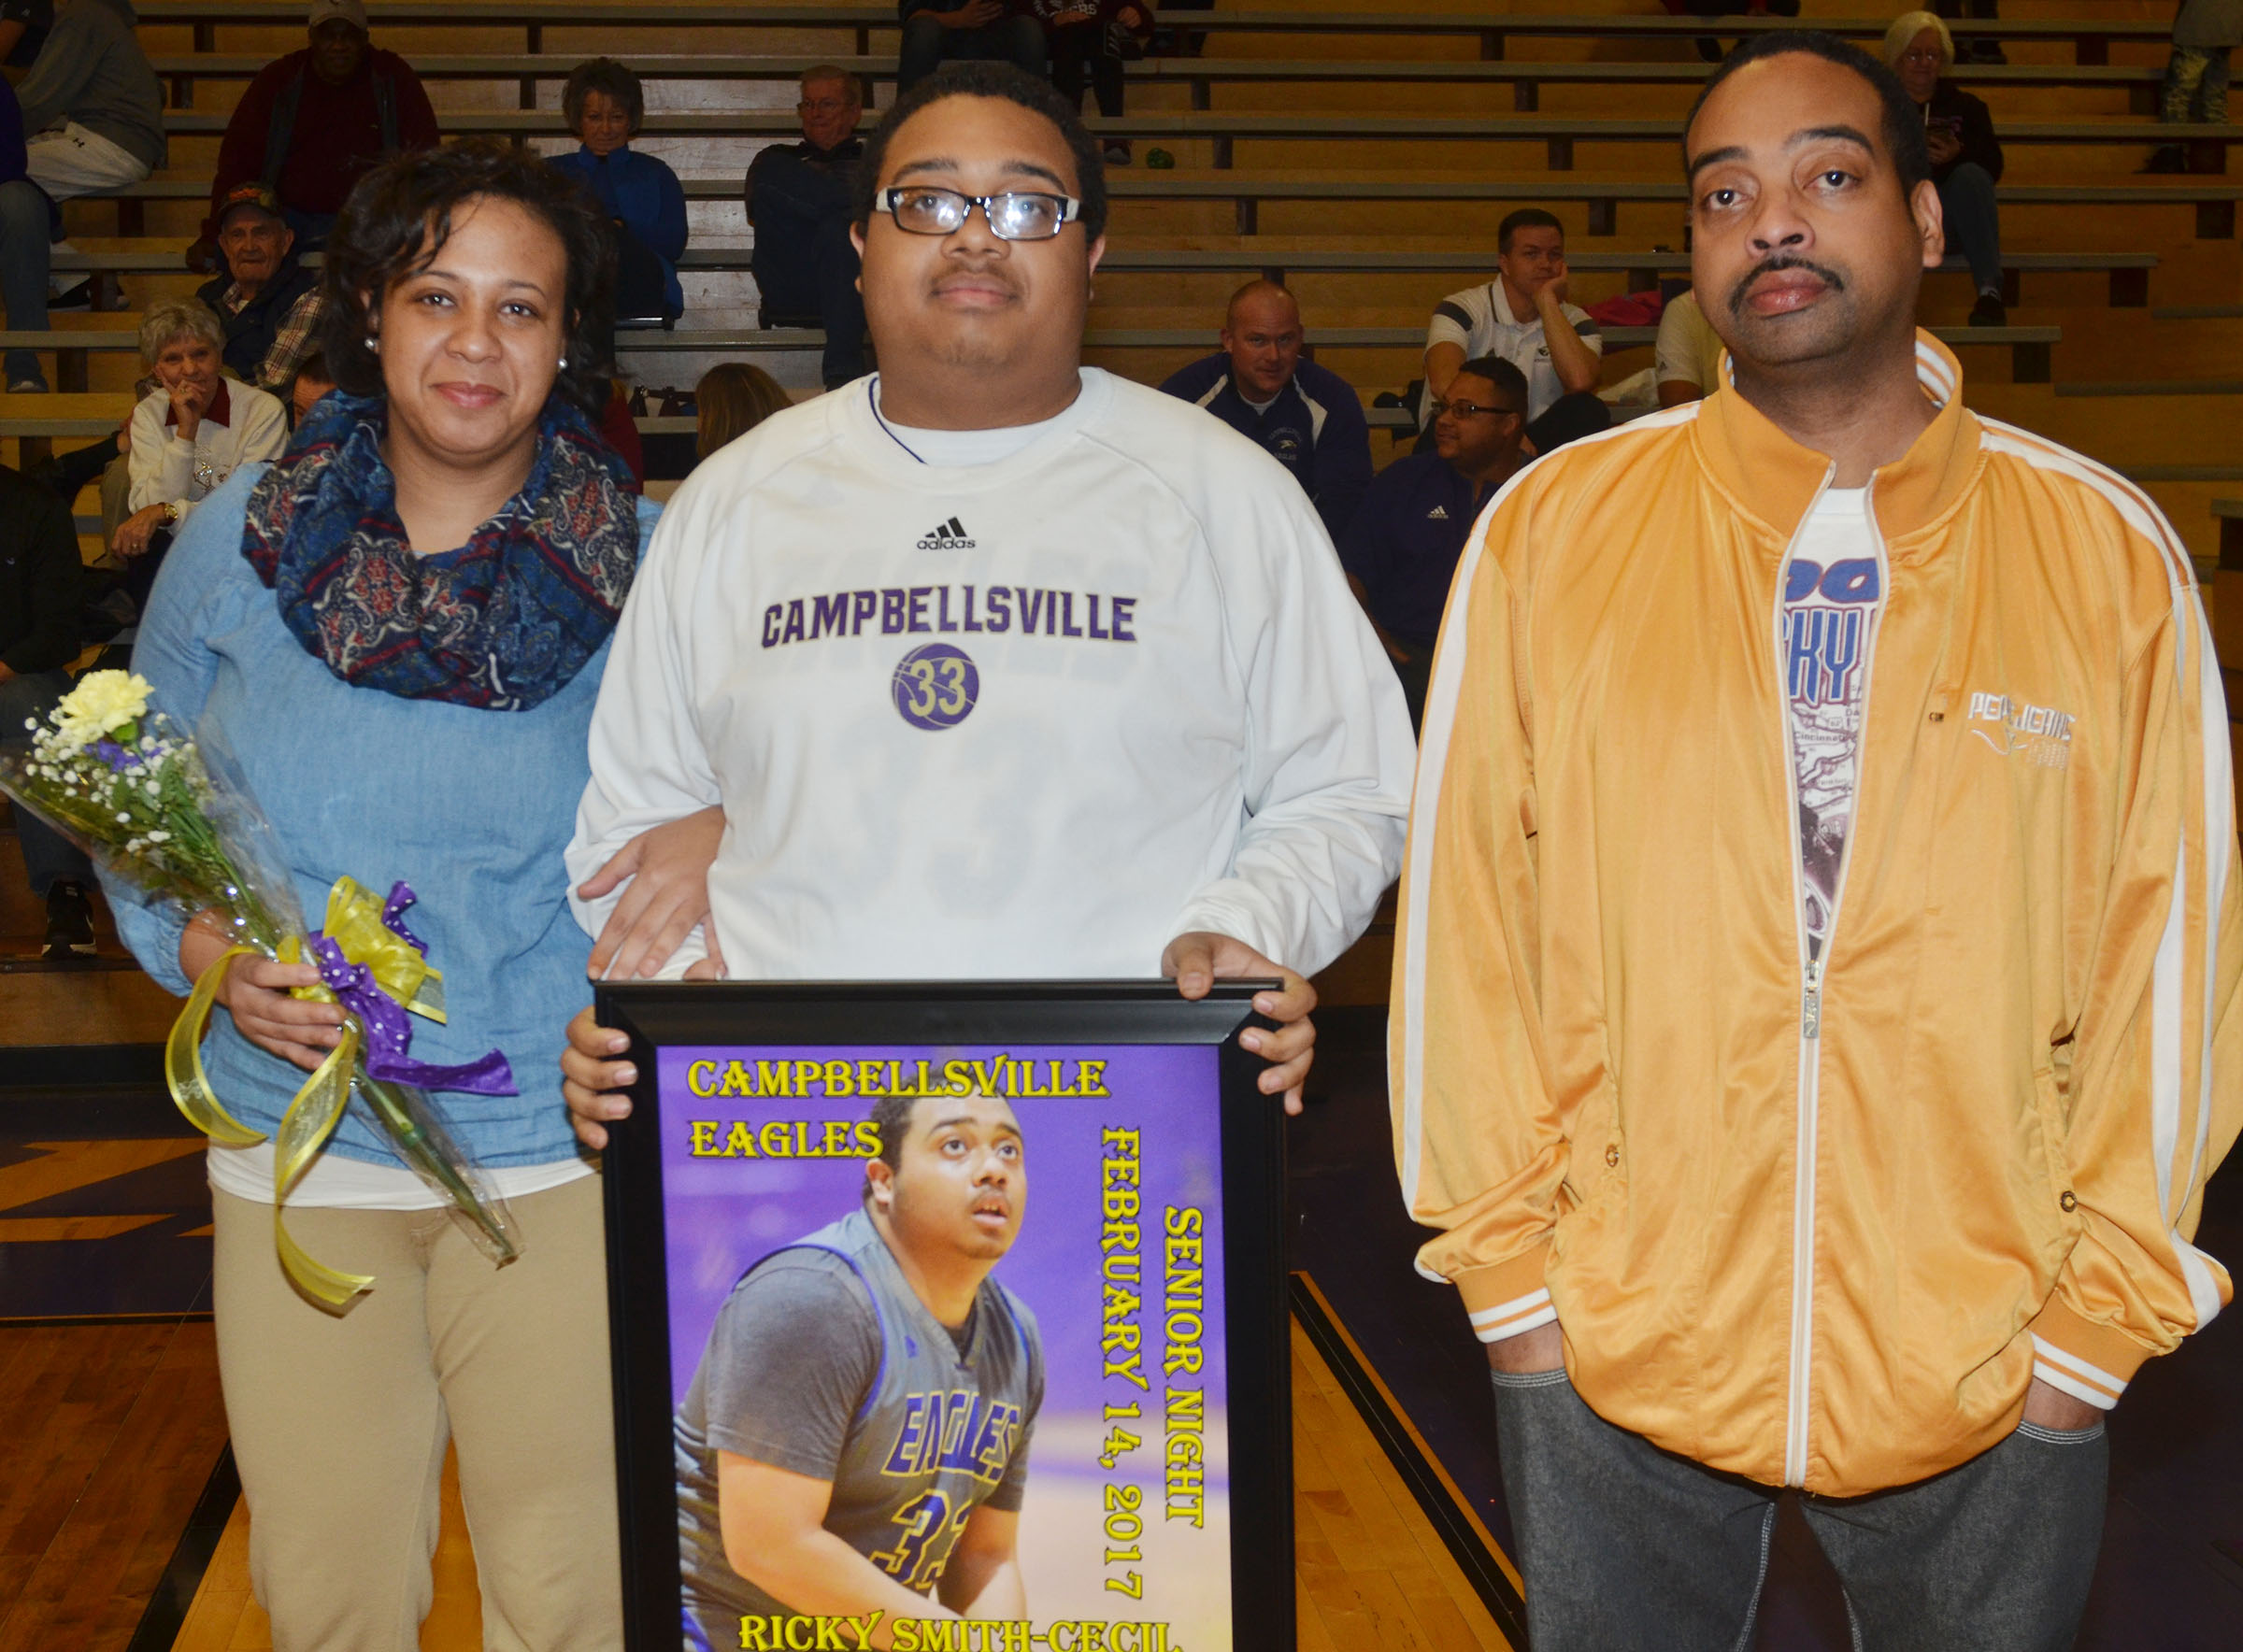 CHS senior boys' basketball player Ricky Smith-Cecil is honored. He is pictured with his parents, Cha-Cha Smith and Ricky Cecil.